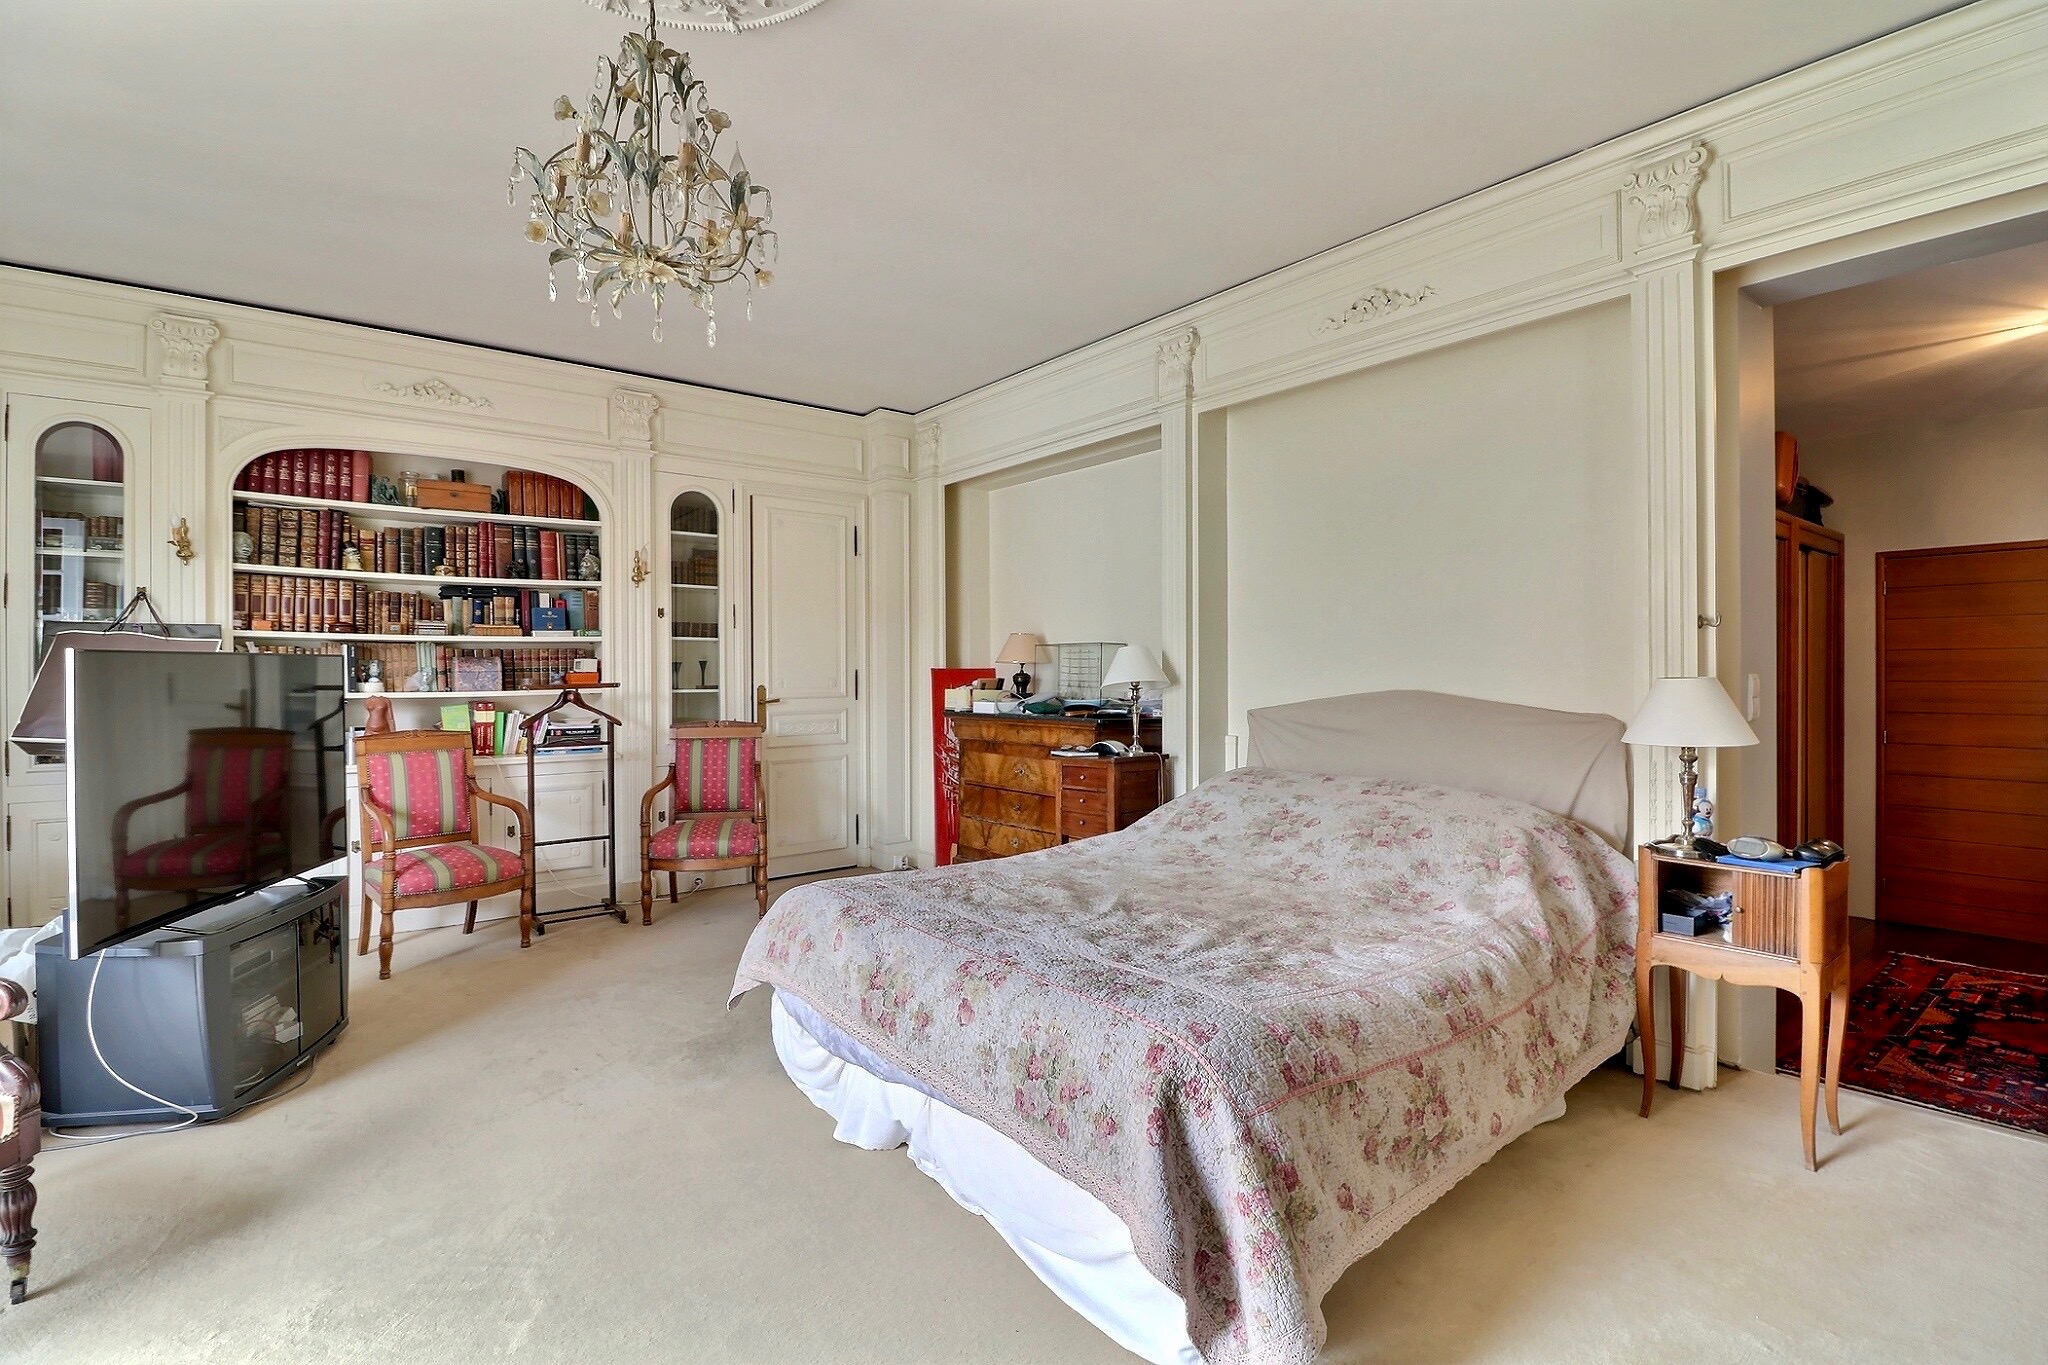 enaparte-ref165-6P-Colombes-Maison-photo-16